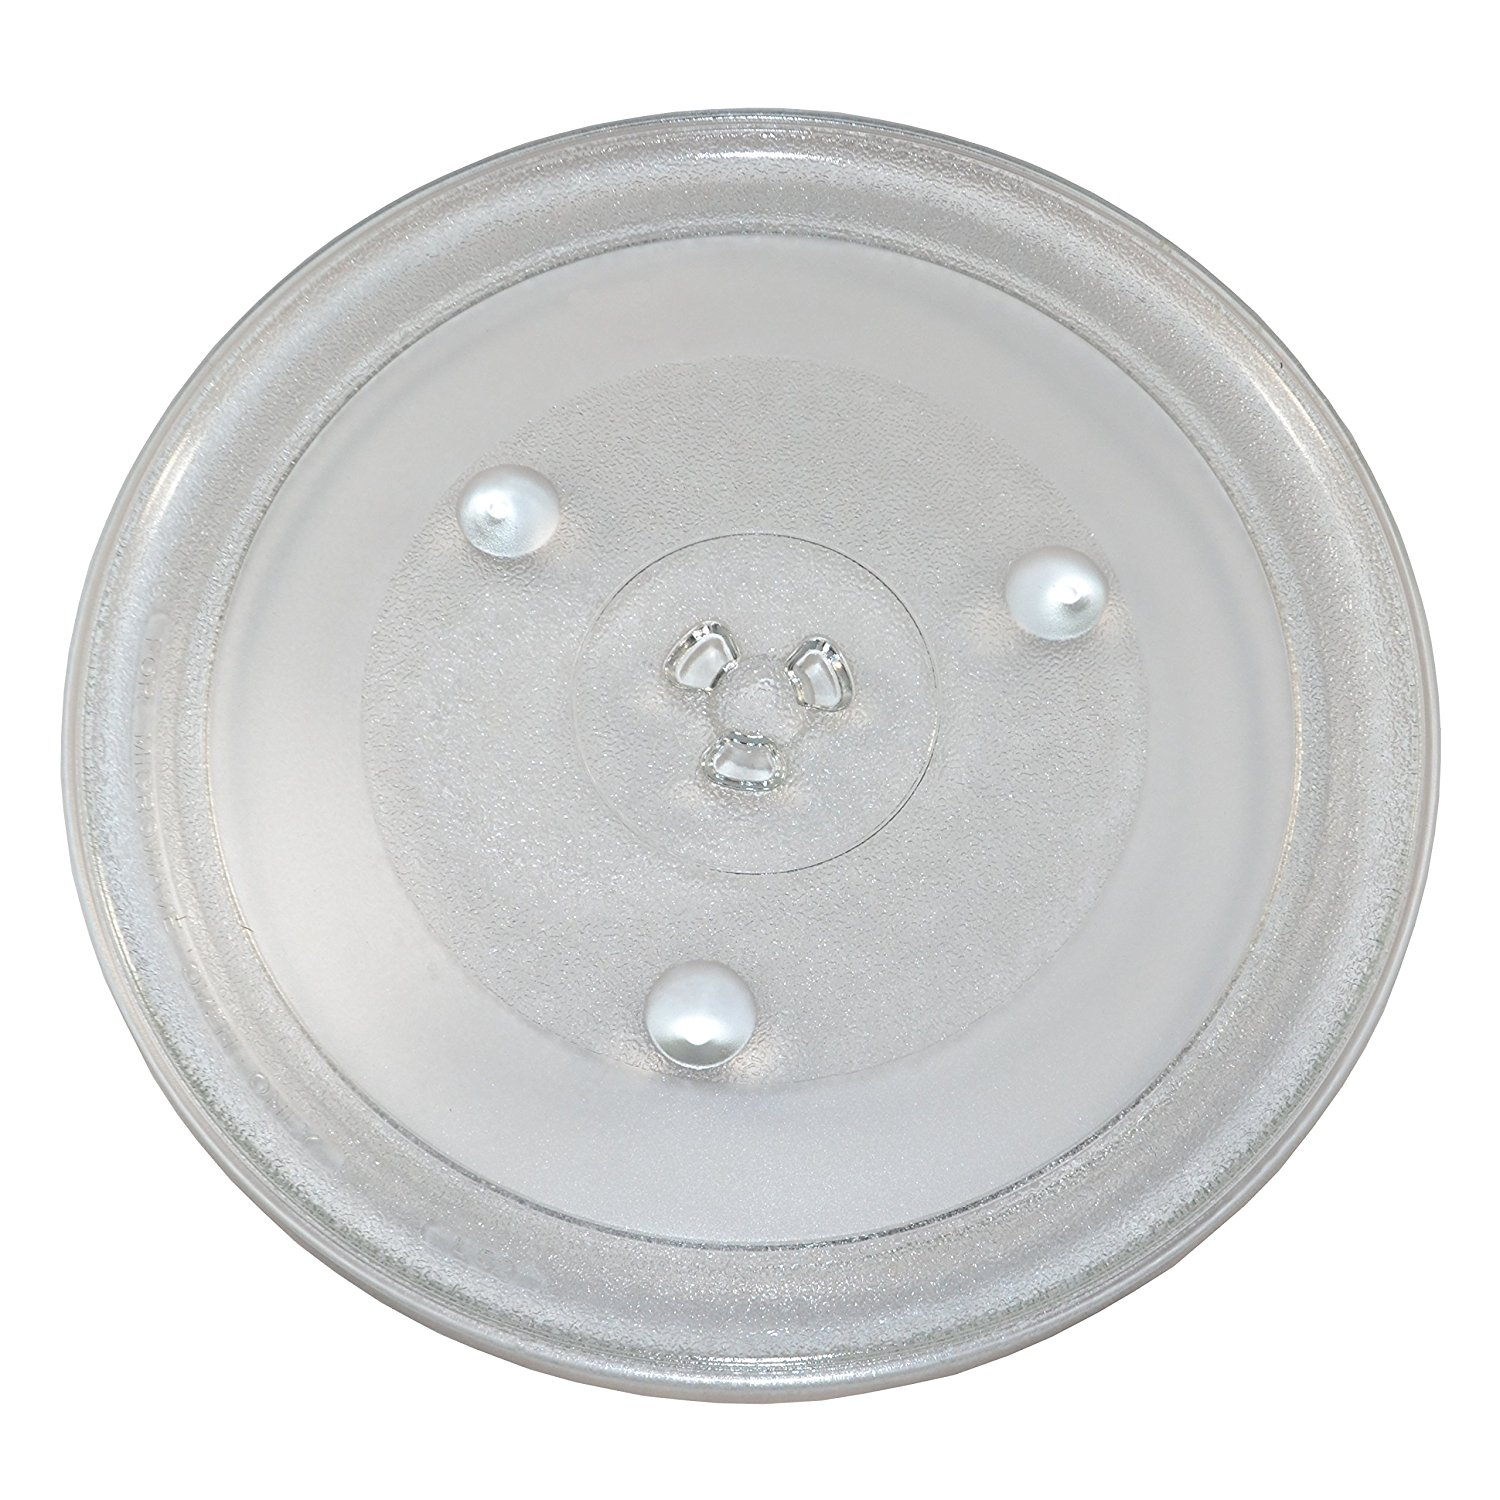 Hqrp 12 3 8 Inch Gl Turntable Tray For Oster Ga1000ap30p34 P34